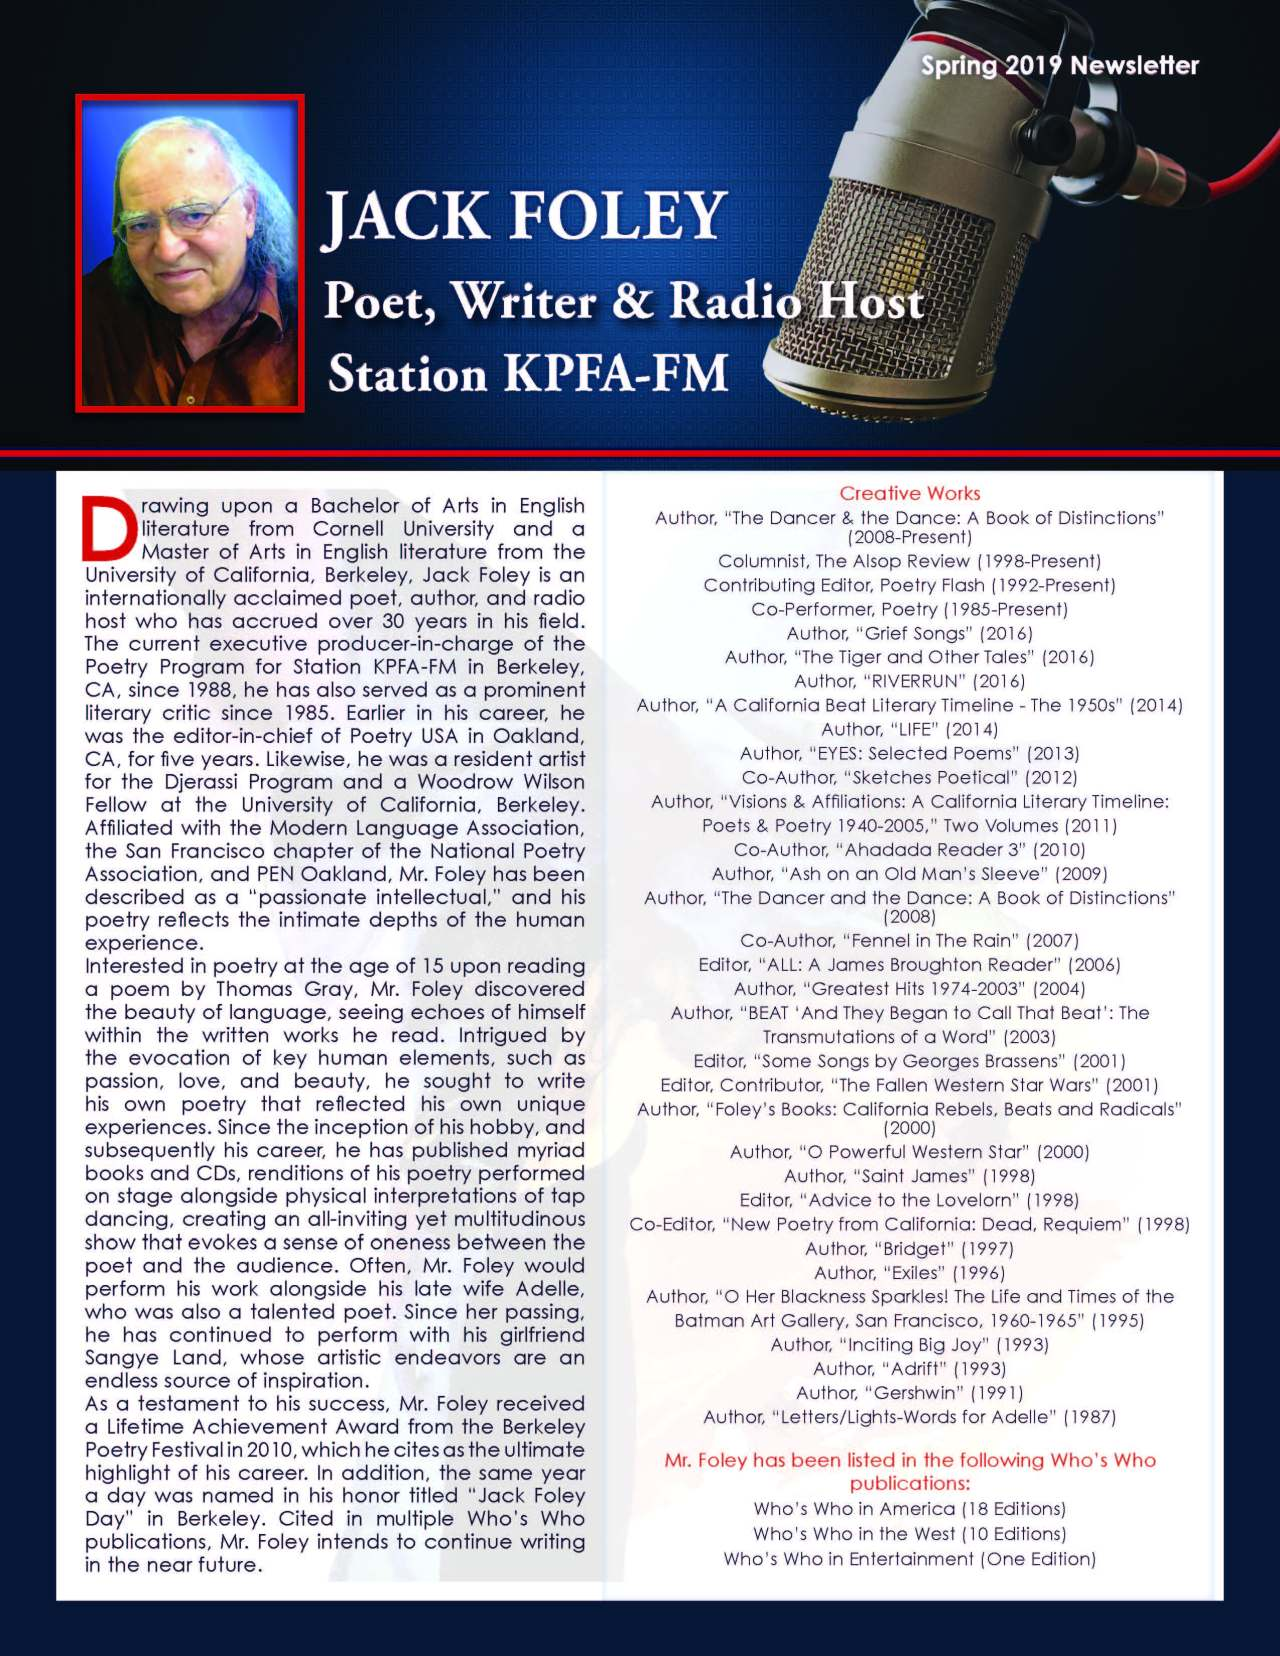 Foley, Jack 4112575_23396161 Newsletter REVISED.jpg